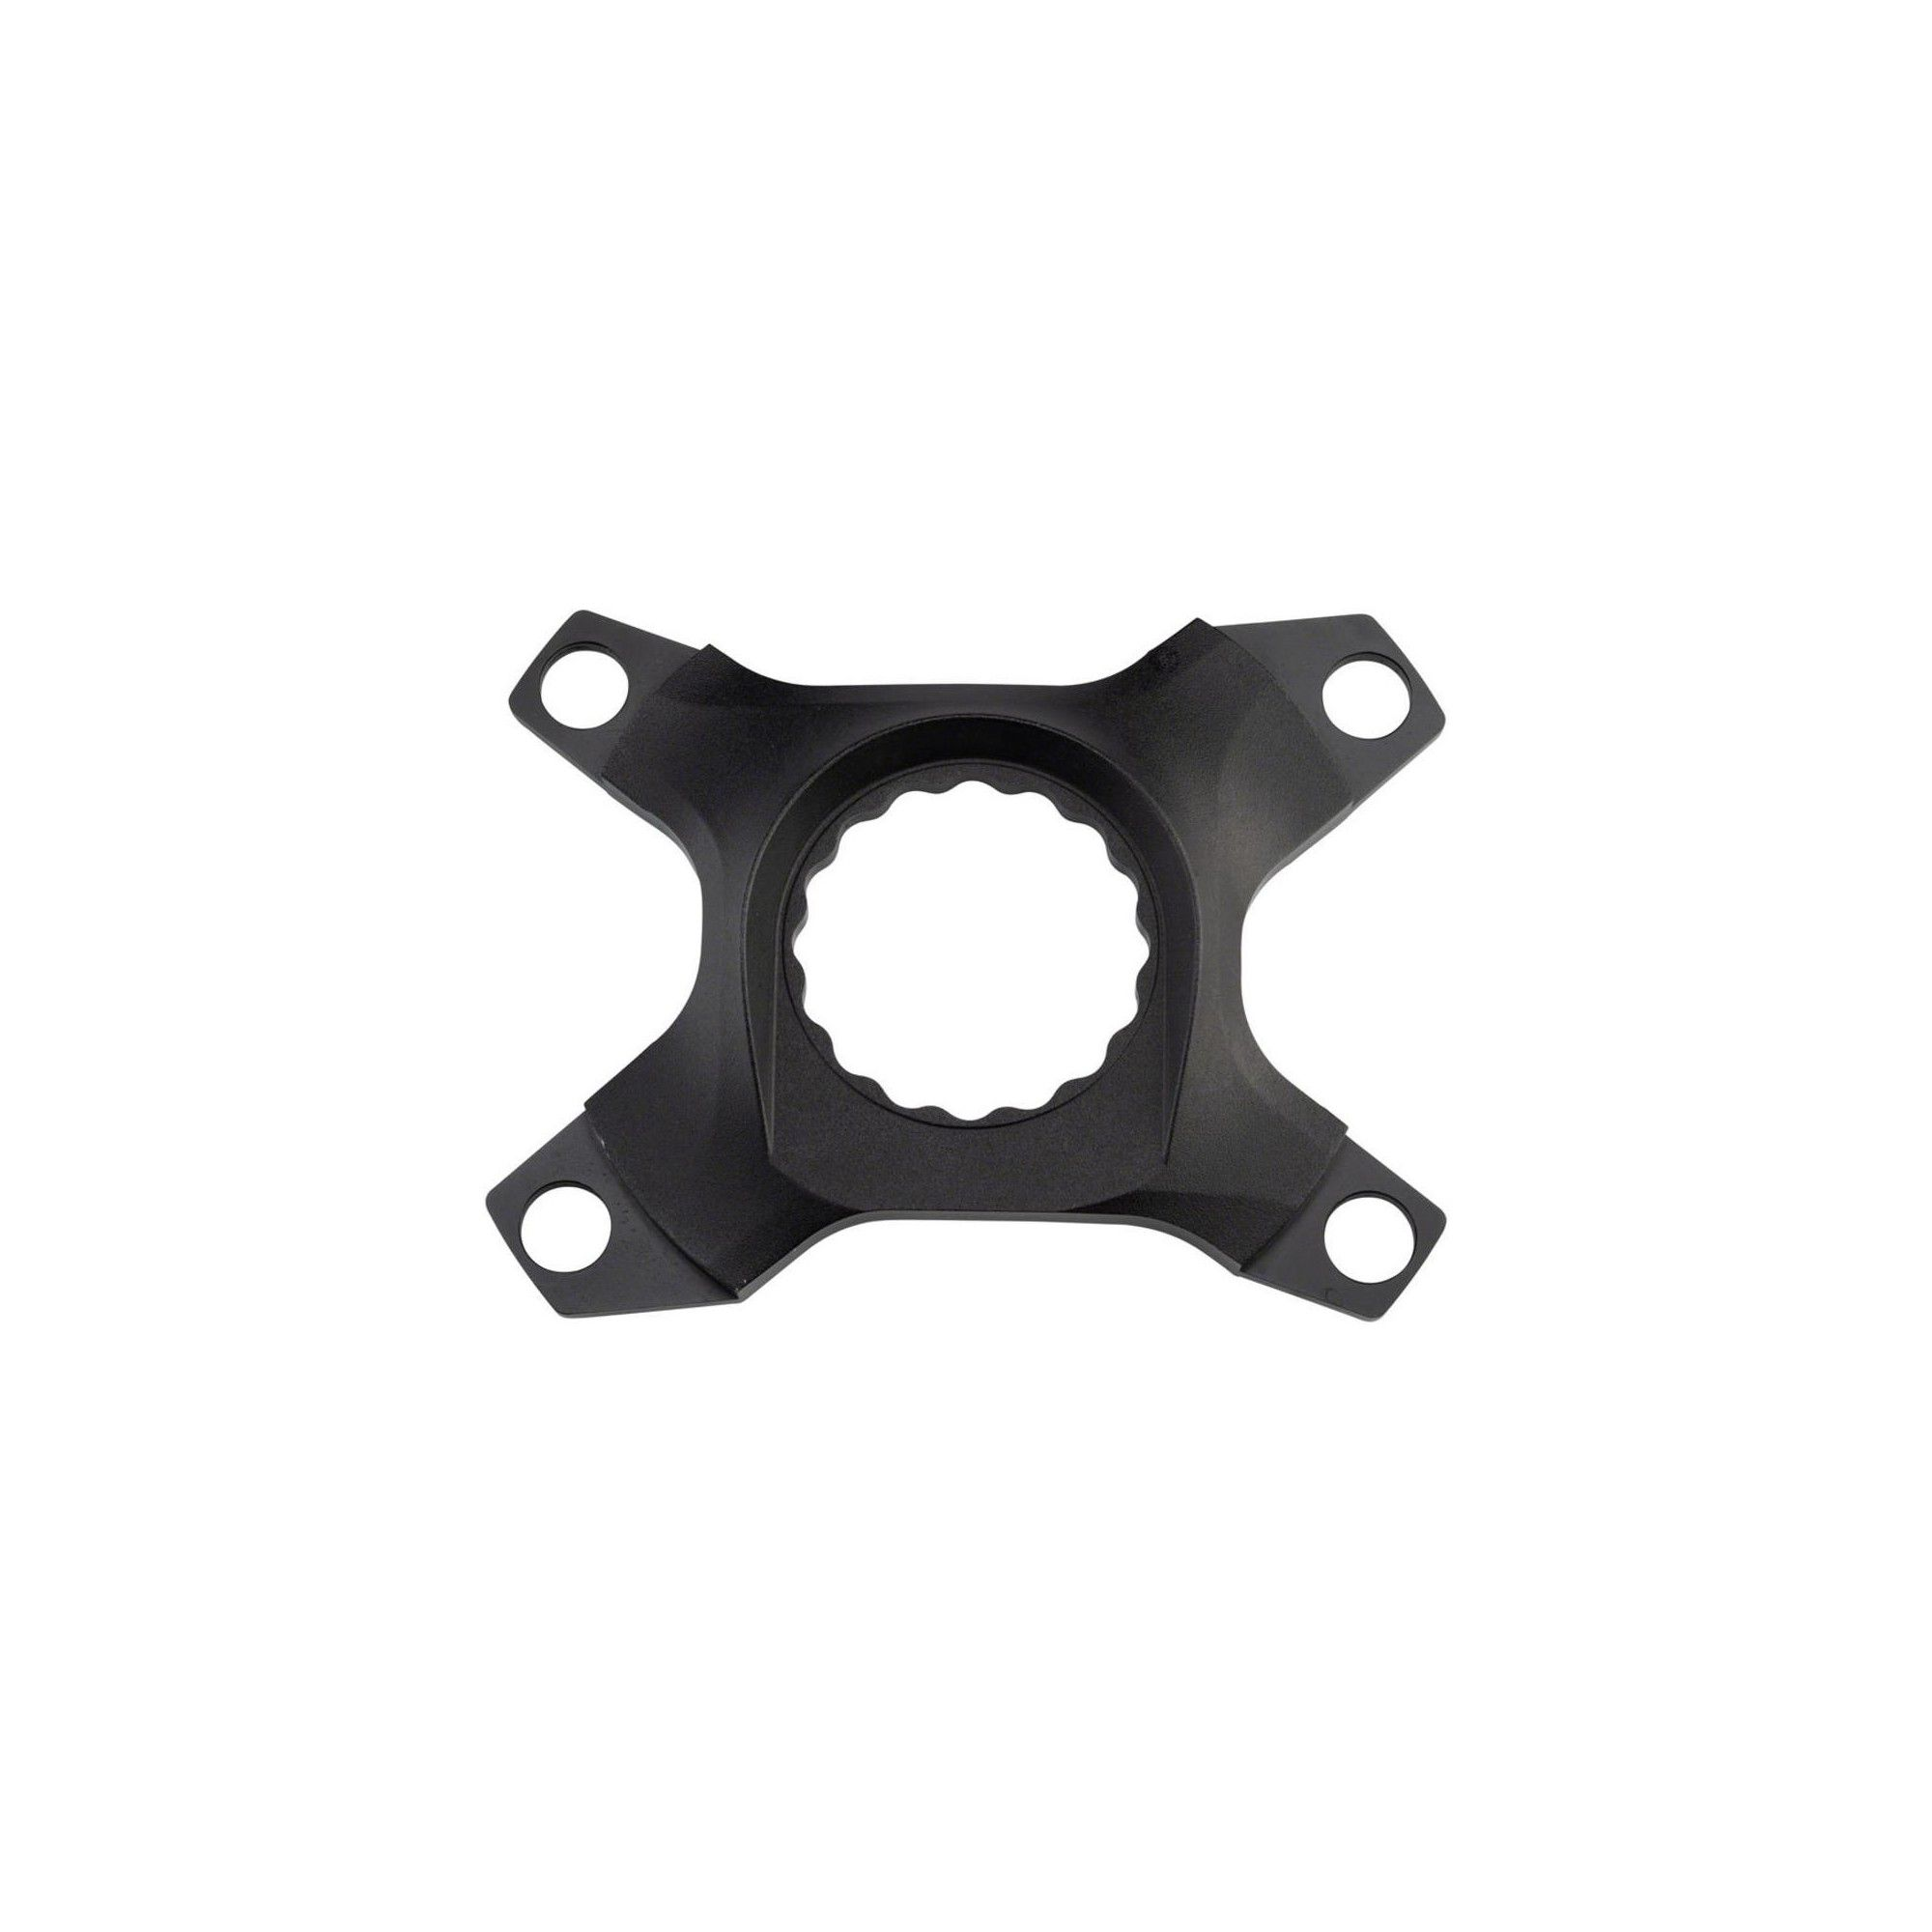 4-Bolt Dual-Chainring Black Easton Assymetric CINCH Spider